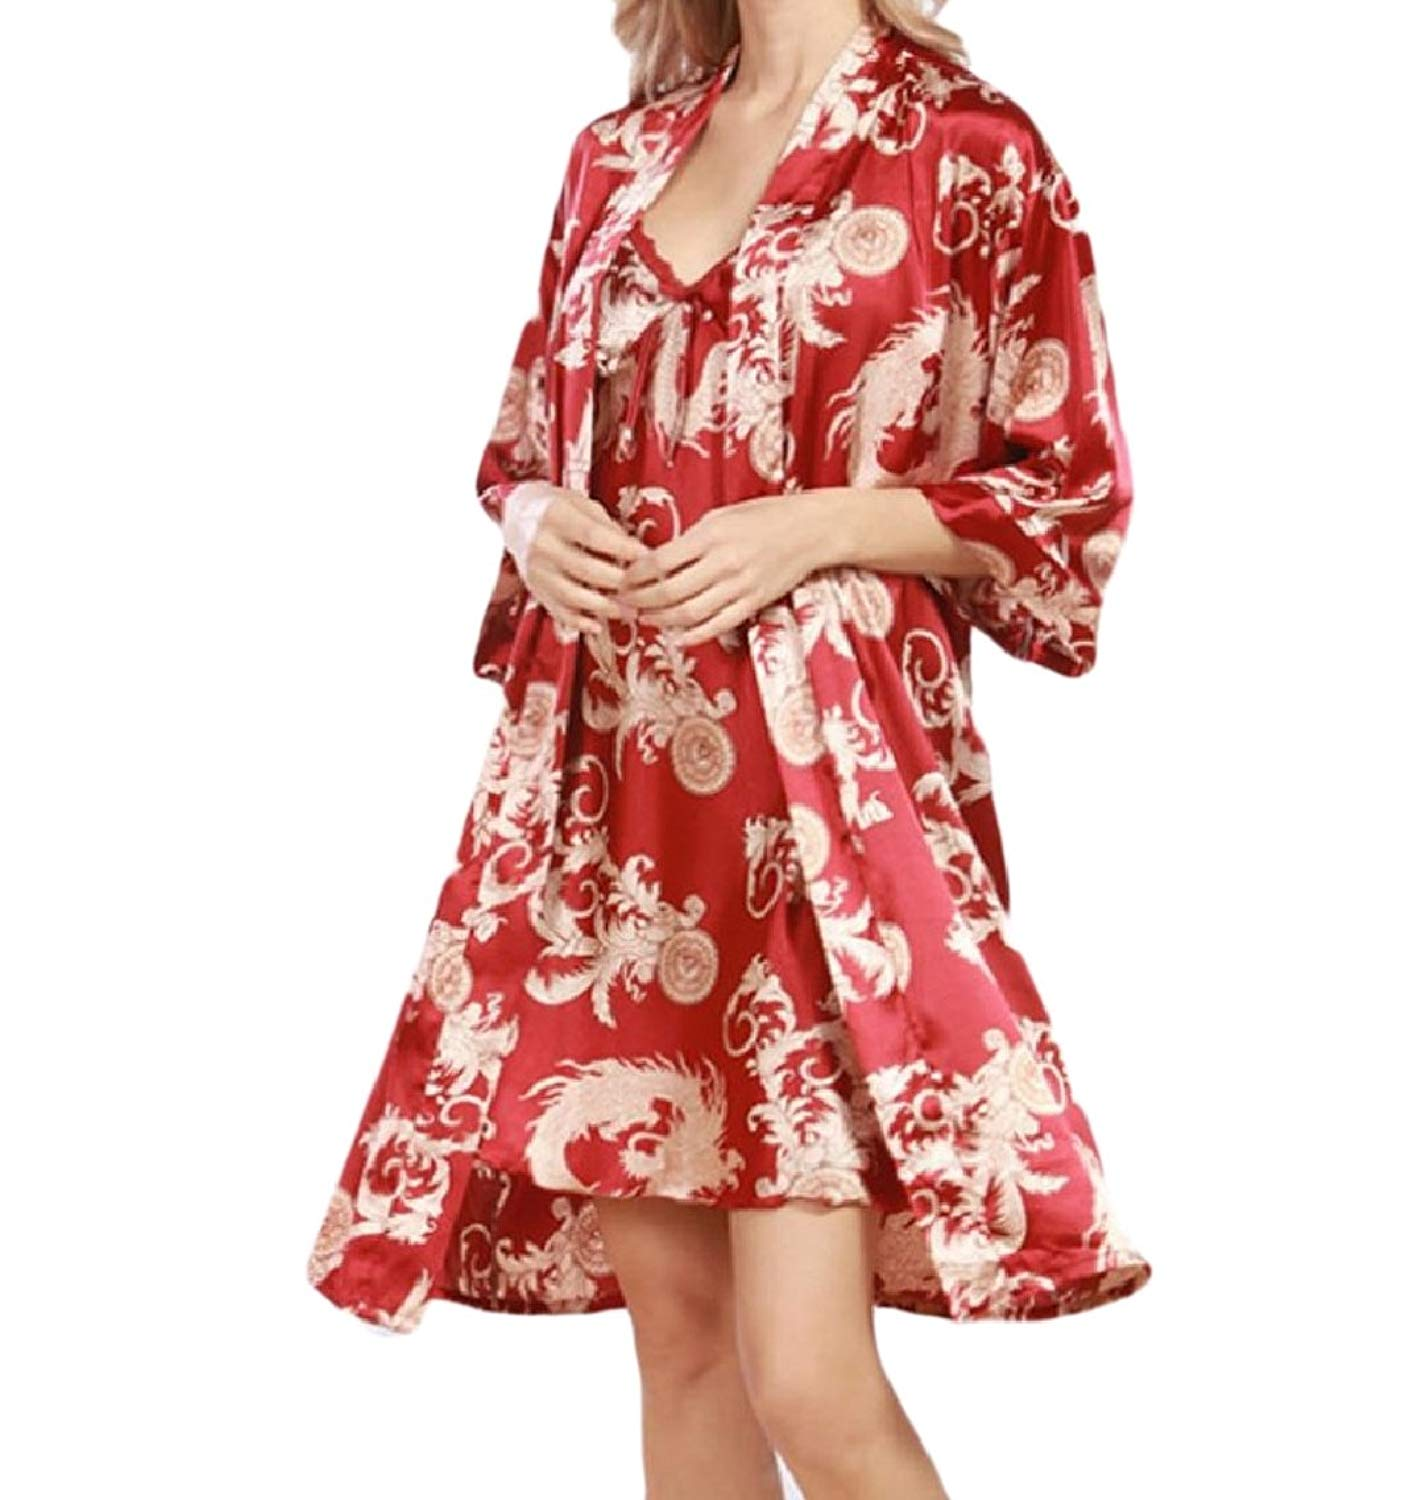 Zimaes-Women Women Summer Cardigan Casual Pajamas Set 2-Piece Night-Gown Sleepwear